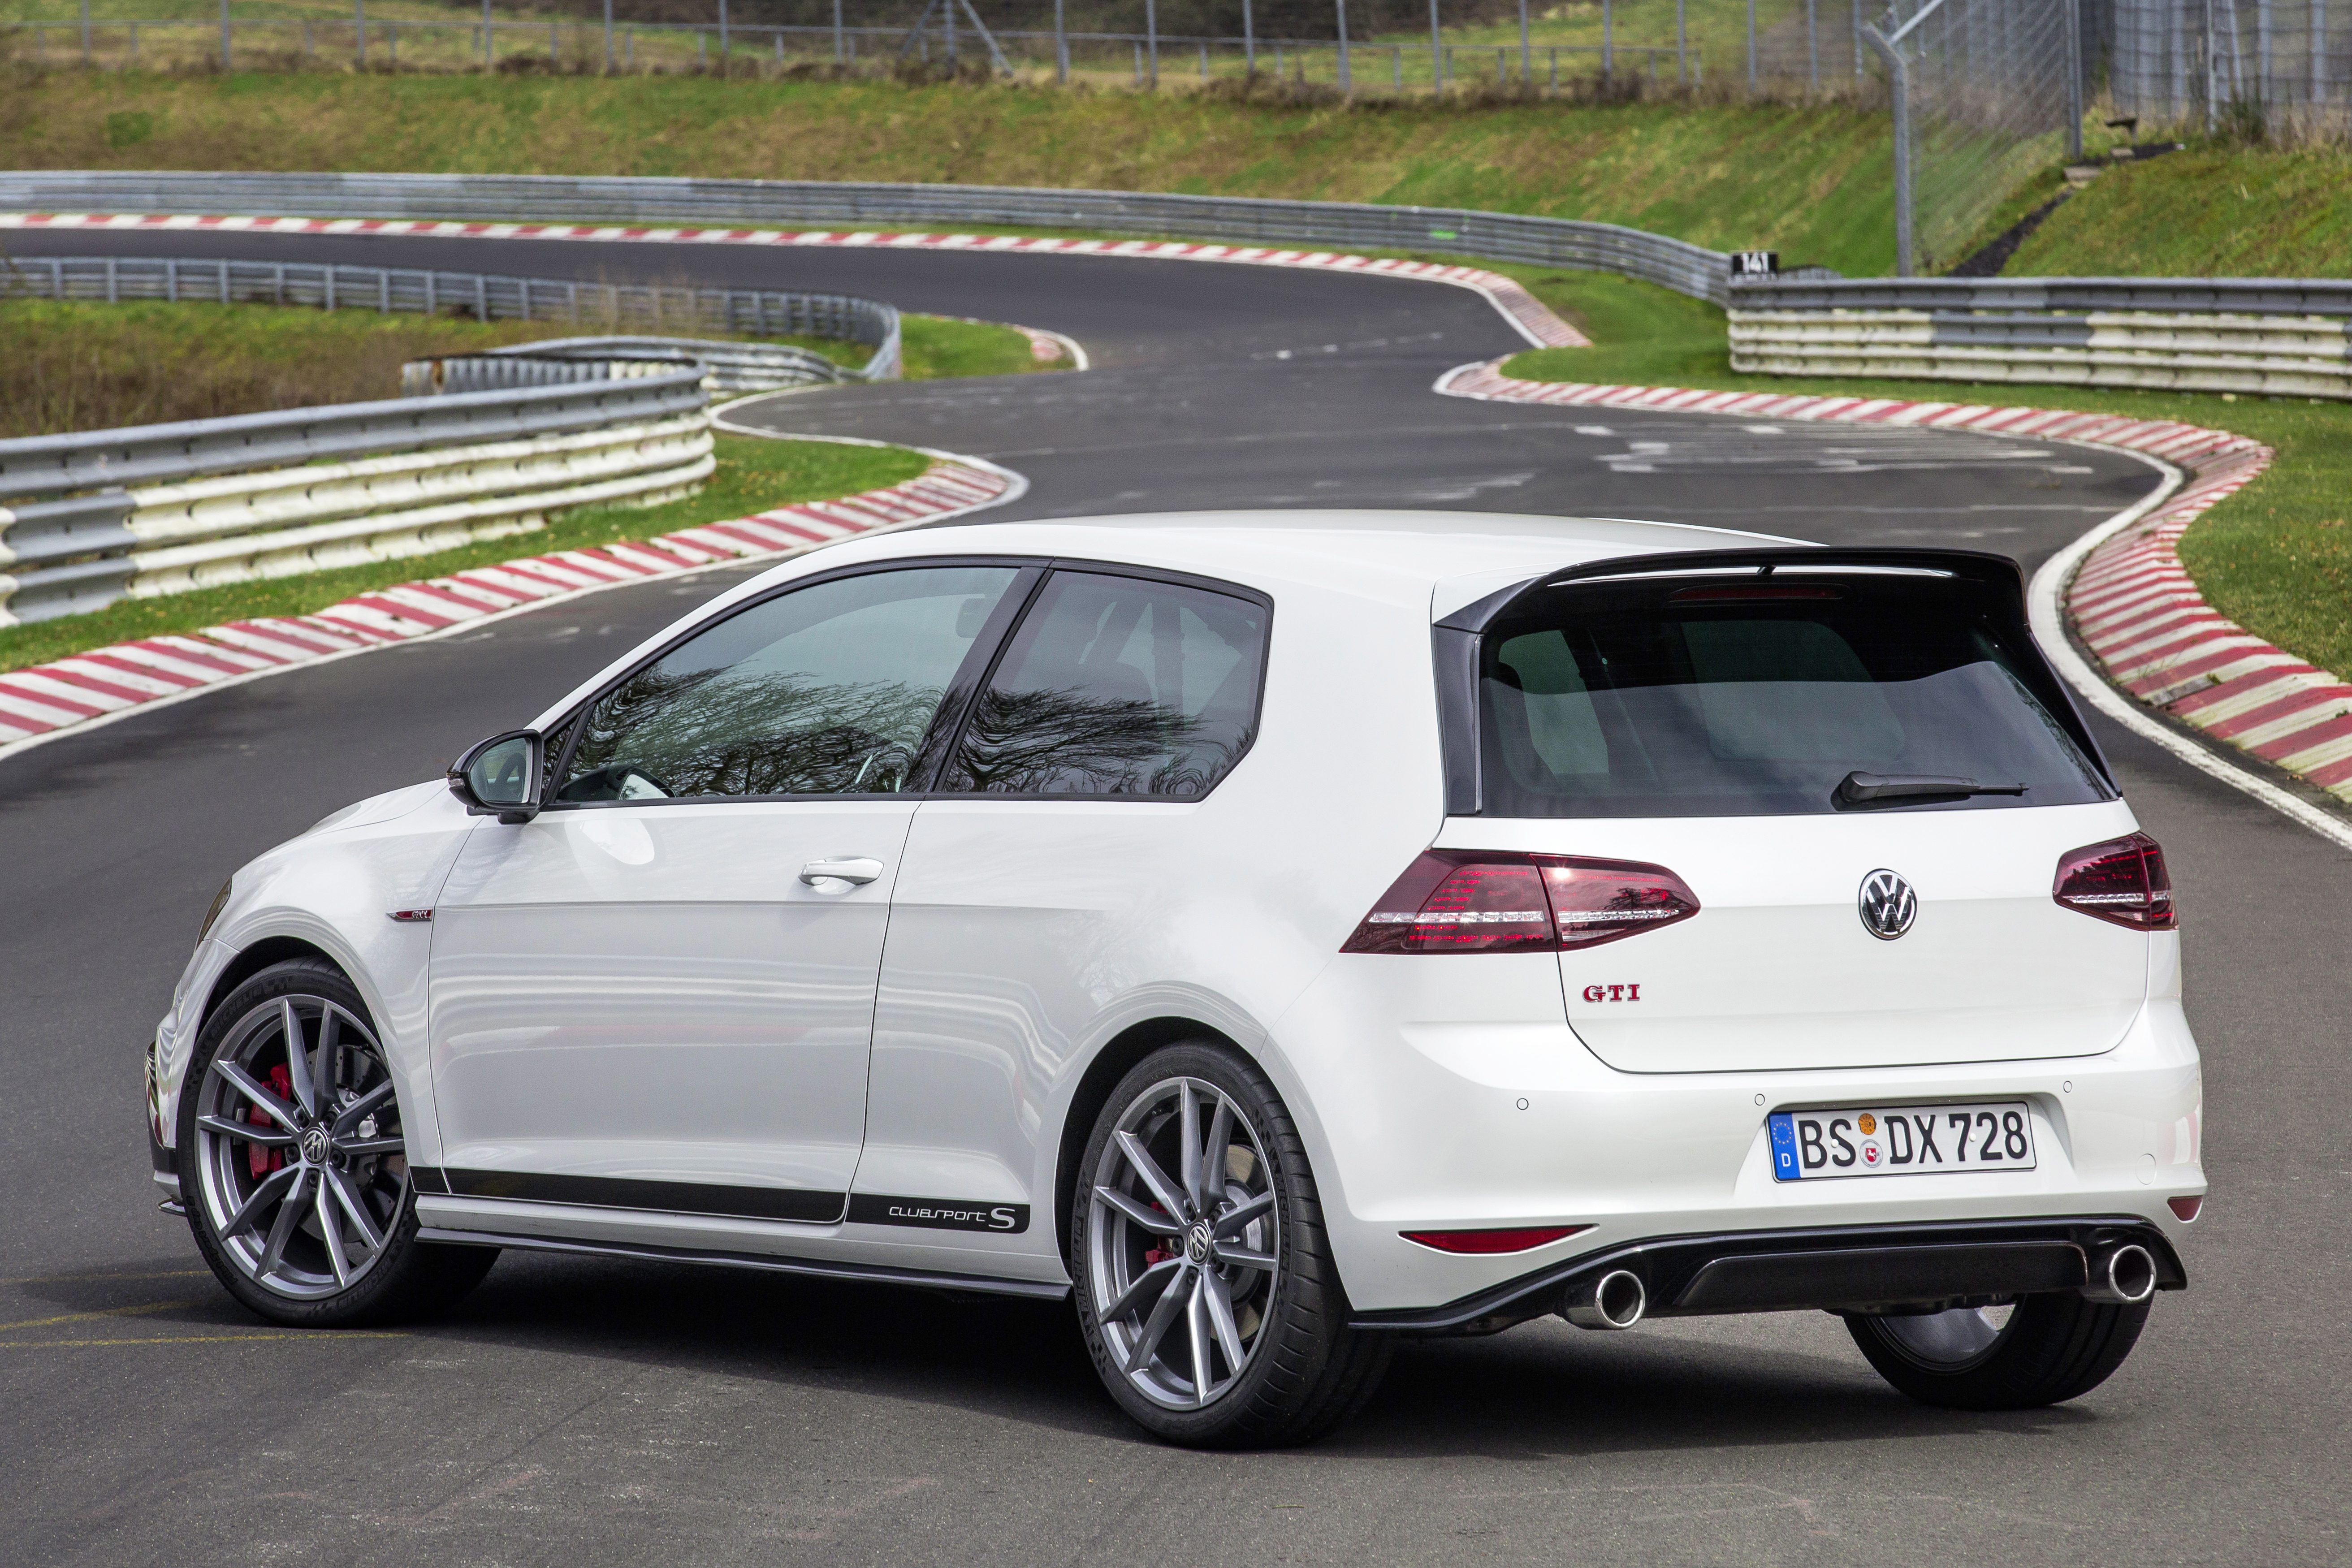 volkswagen golf gti clubsport s revealed 310 ps hot hatch breaks civic type r nurburgring. Black Bedroom Furniture Sets. Home Design Ideas